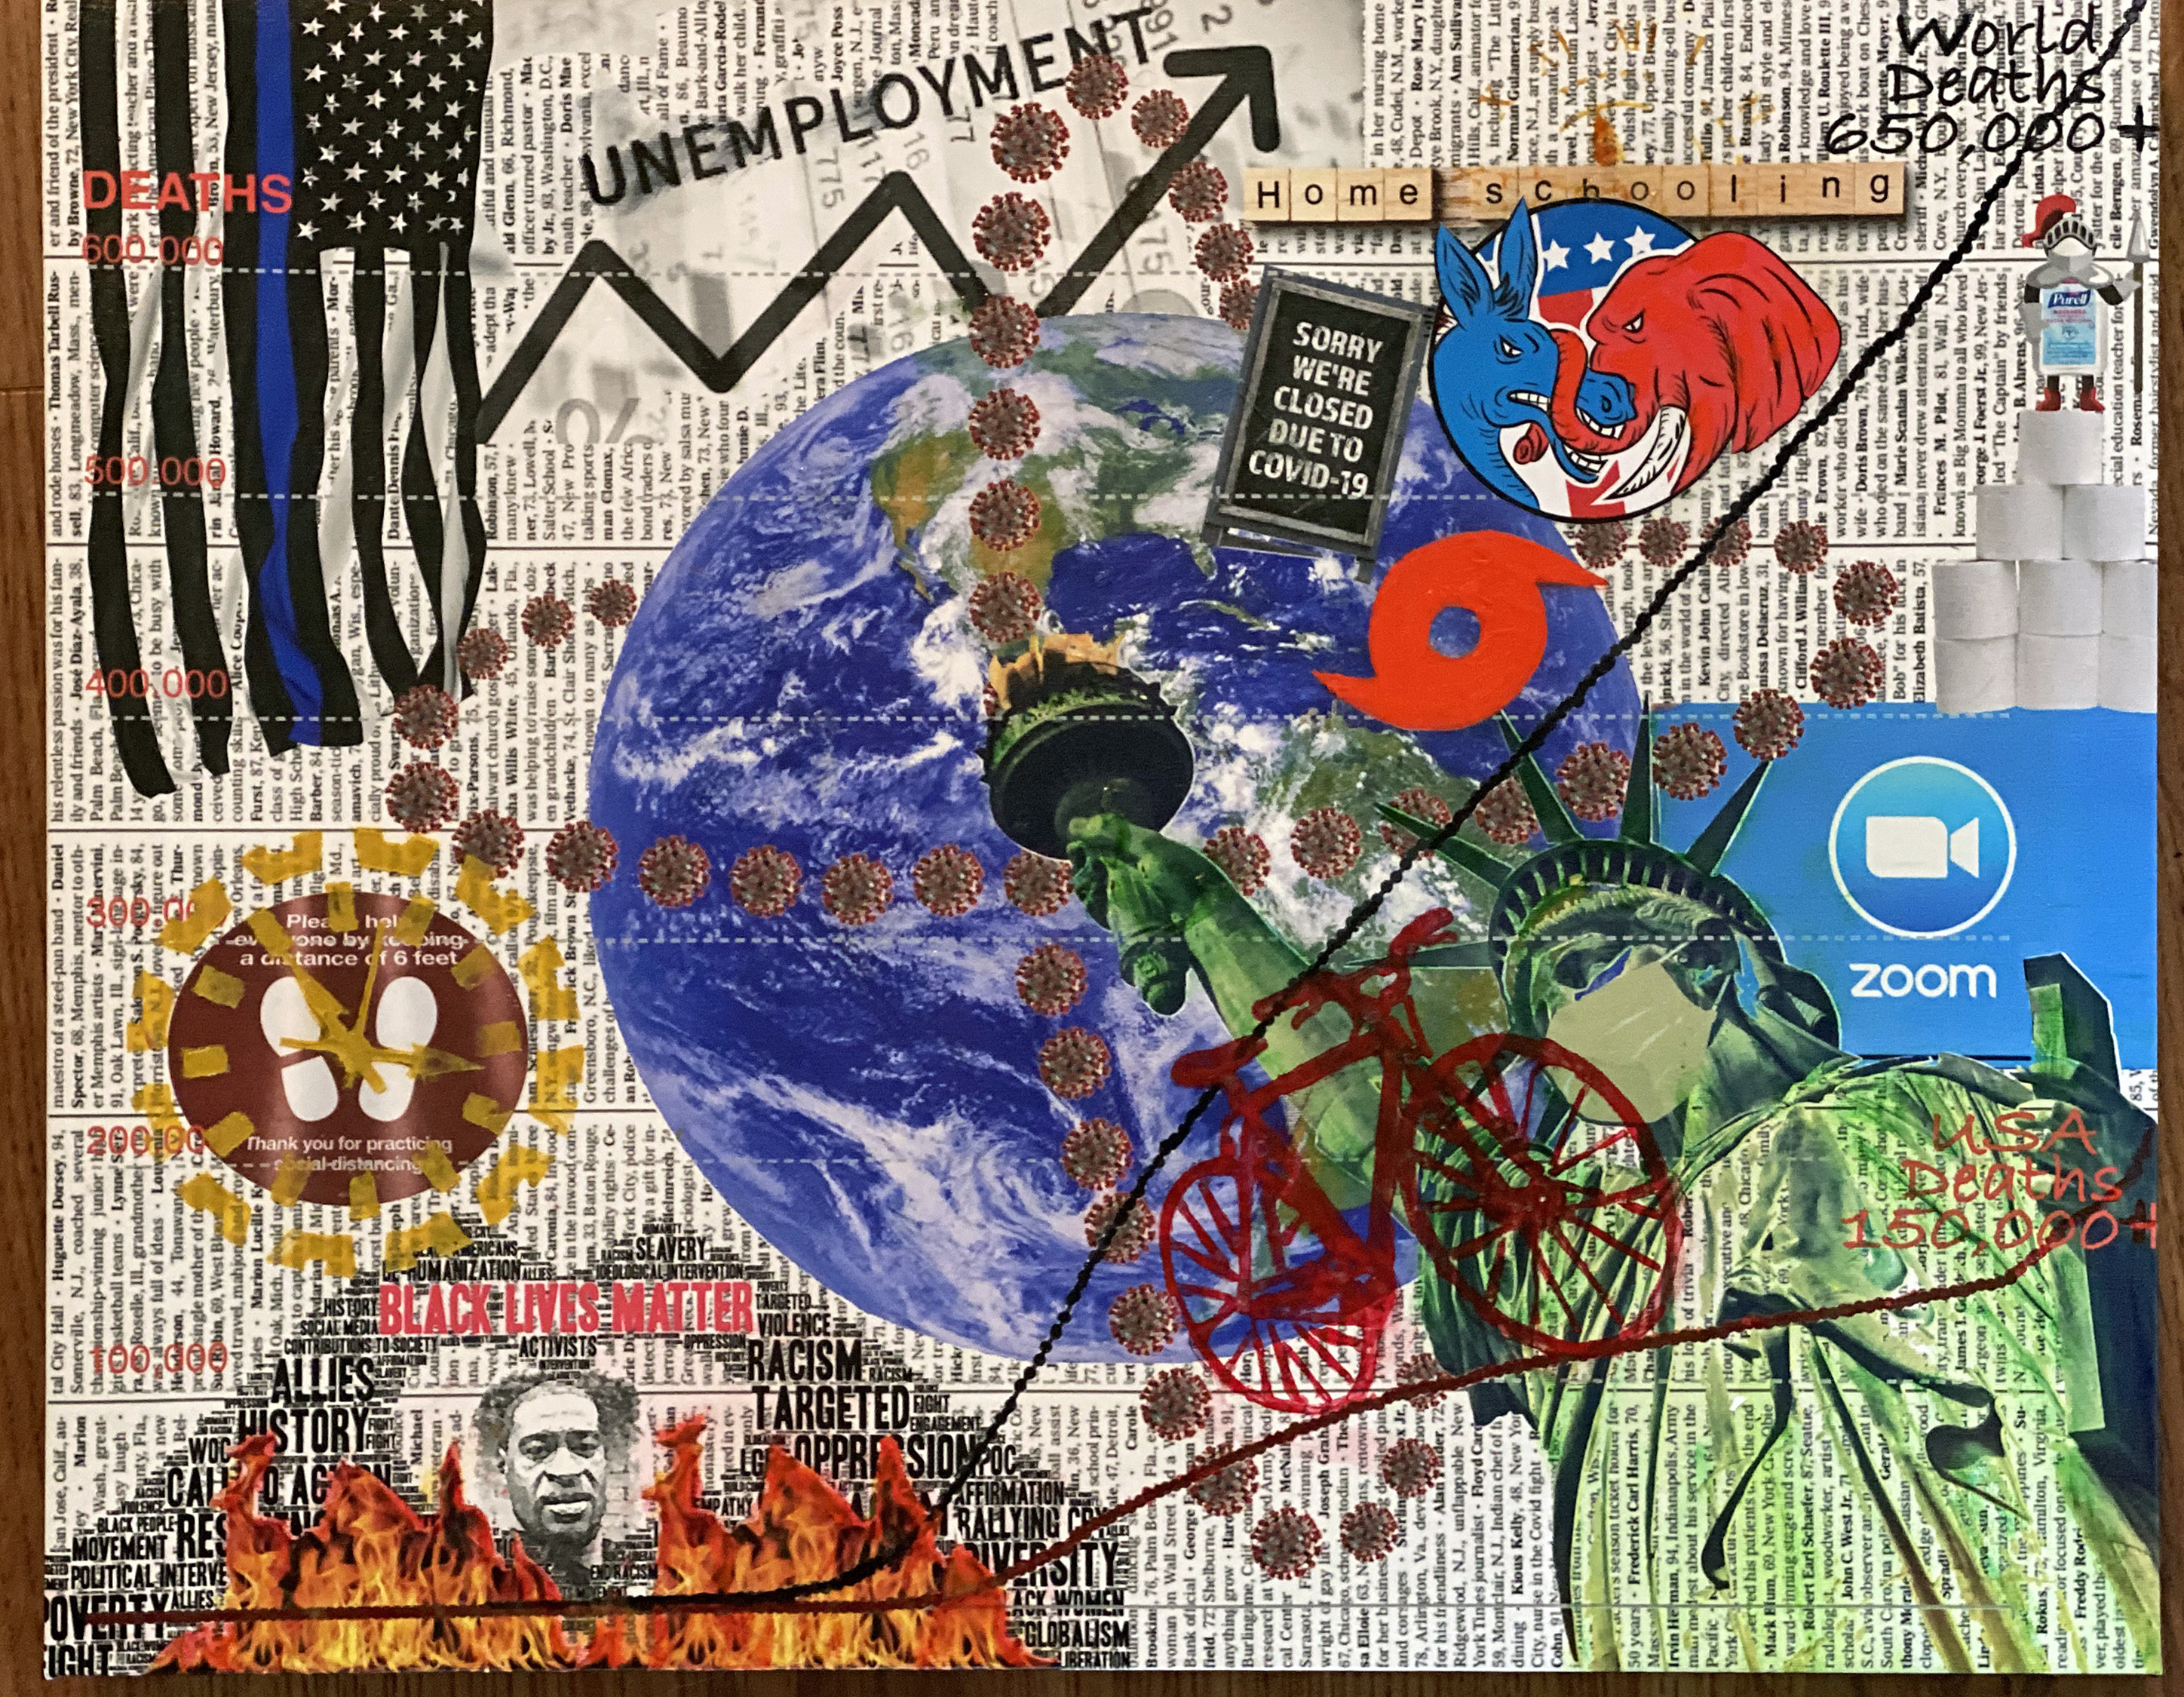 'My World 2020', mixed media by Avery St. Jean ($199) ⎼ 'My inspiration for this piece started with the May 24th, Sunday New York Times front page. The headline was: 'U.S. Deaths near 100,000 … They Were Not Simply Names. They Were Us.' The very next day, May 25th, George Floyd is killed during an arrest for passing a counterfit $20 bill in Minneapolis. The world now seemed to spiral out of control as protests, riots, looting was as rampat as the virus. People everywhere were tired of the shut downs, quarantines and shortages everywhere. To sum it up with a quote from one of my favorite movies, 'Network', Howard Beale says: 'We know things are bad - worse than bad. They're crazy. It's like everything everywhere is going crazy, so we don't go out anymore. We sit in the house, and slowly the world we are living in is getting smaller... I'm mad as hell, and I'm not gonna take this anymore!''